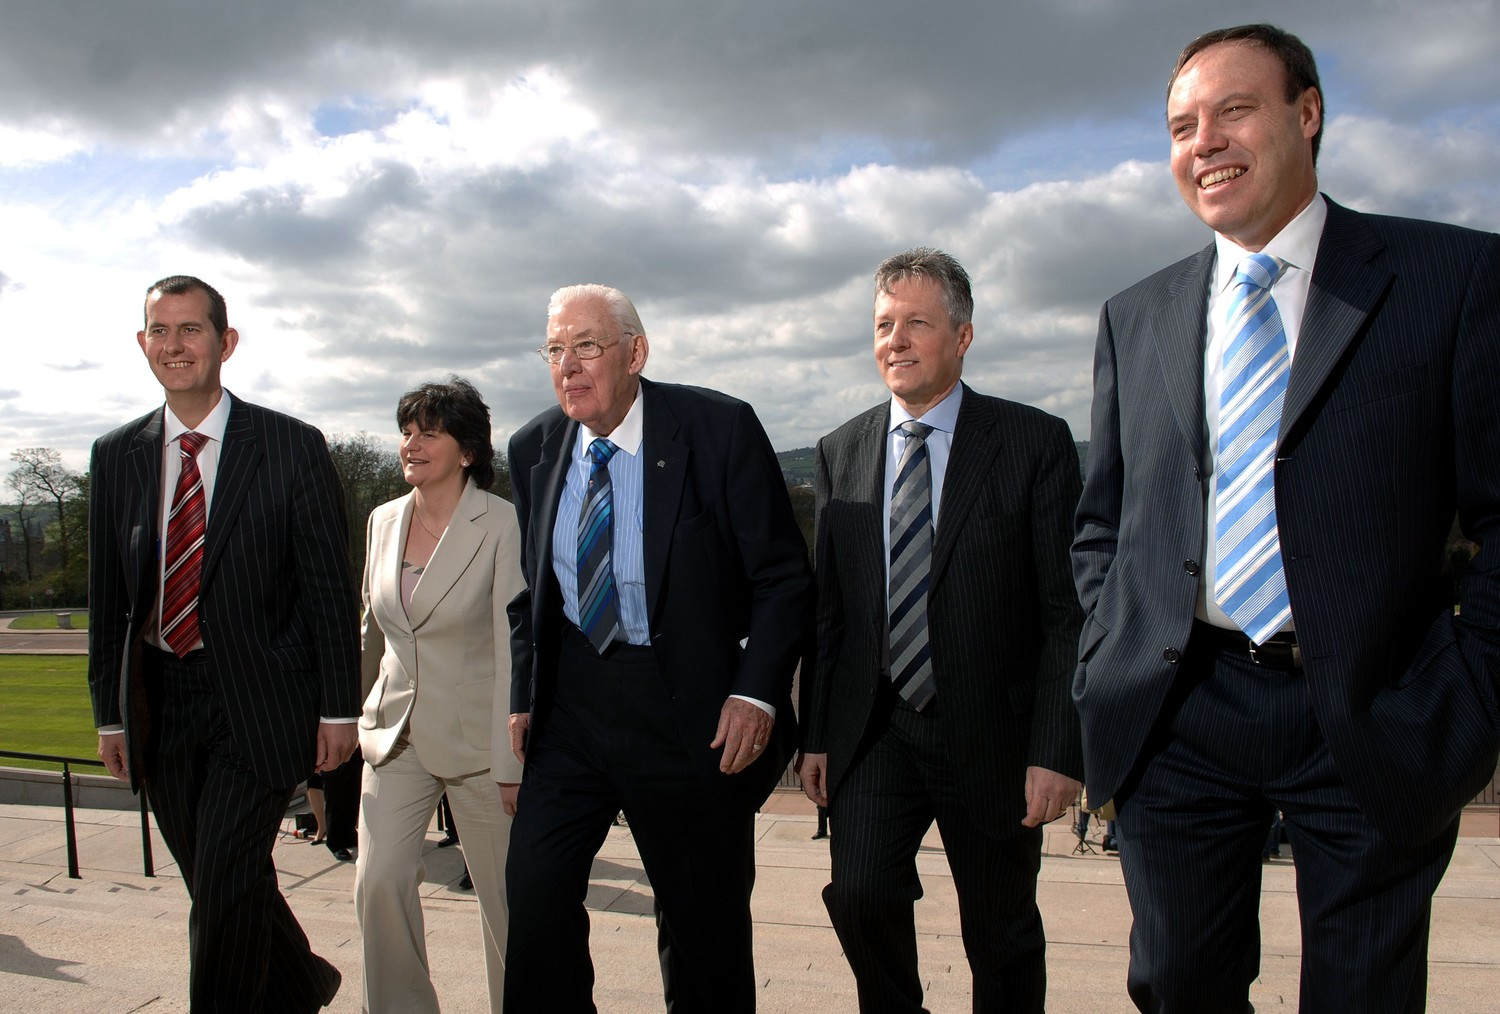 The DUP's Edwin Poots, Arlene Foster, Ian Paisley, Peter Robinson and Nigel Dodds, pictured in 2007 as they began to share power with Sinn Féin.